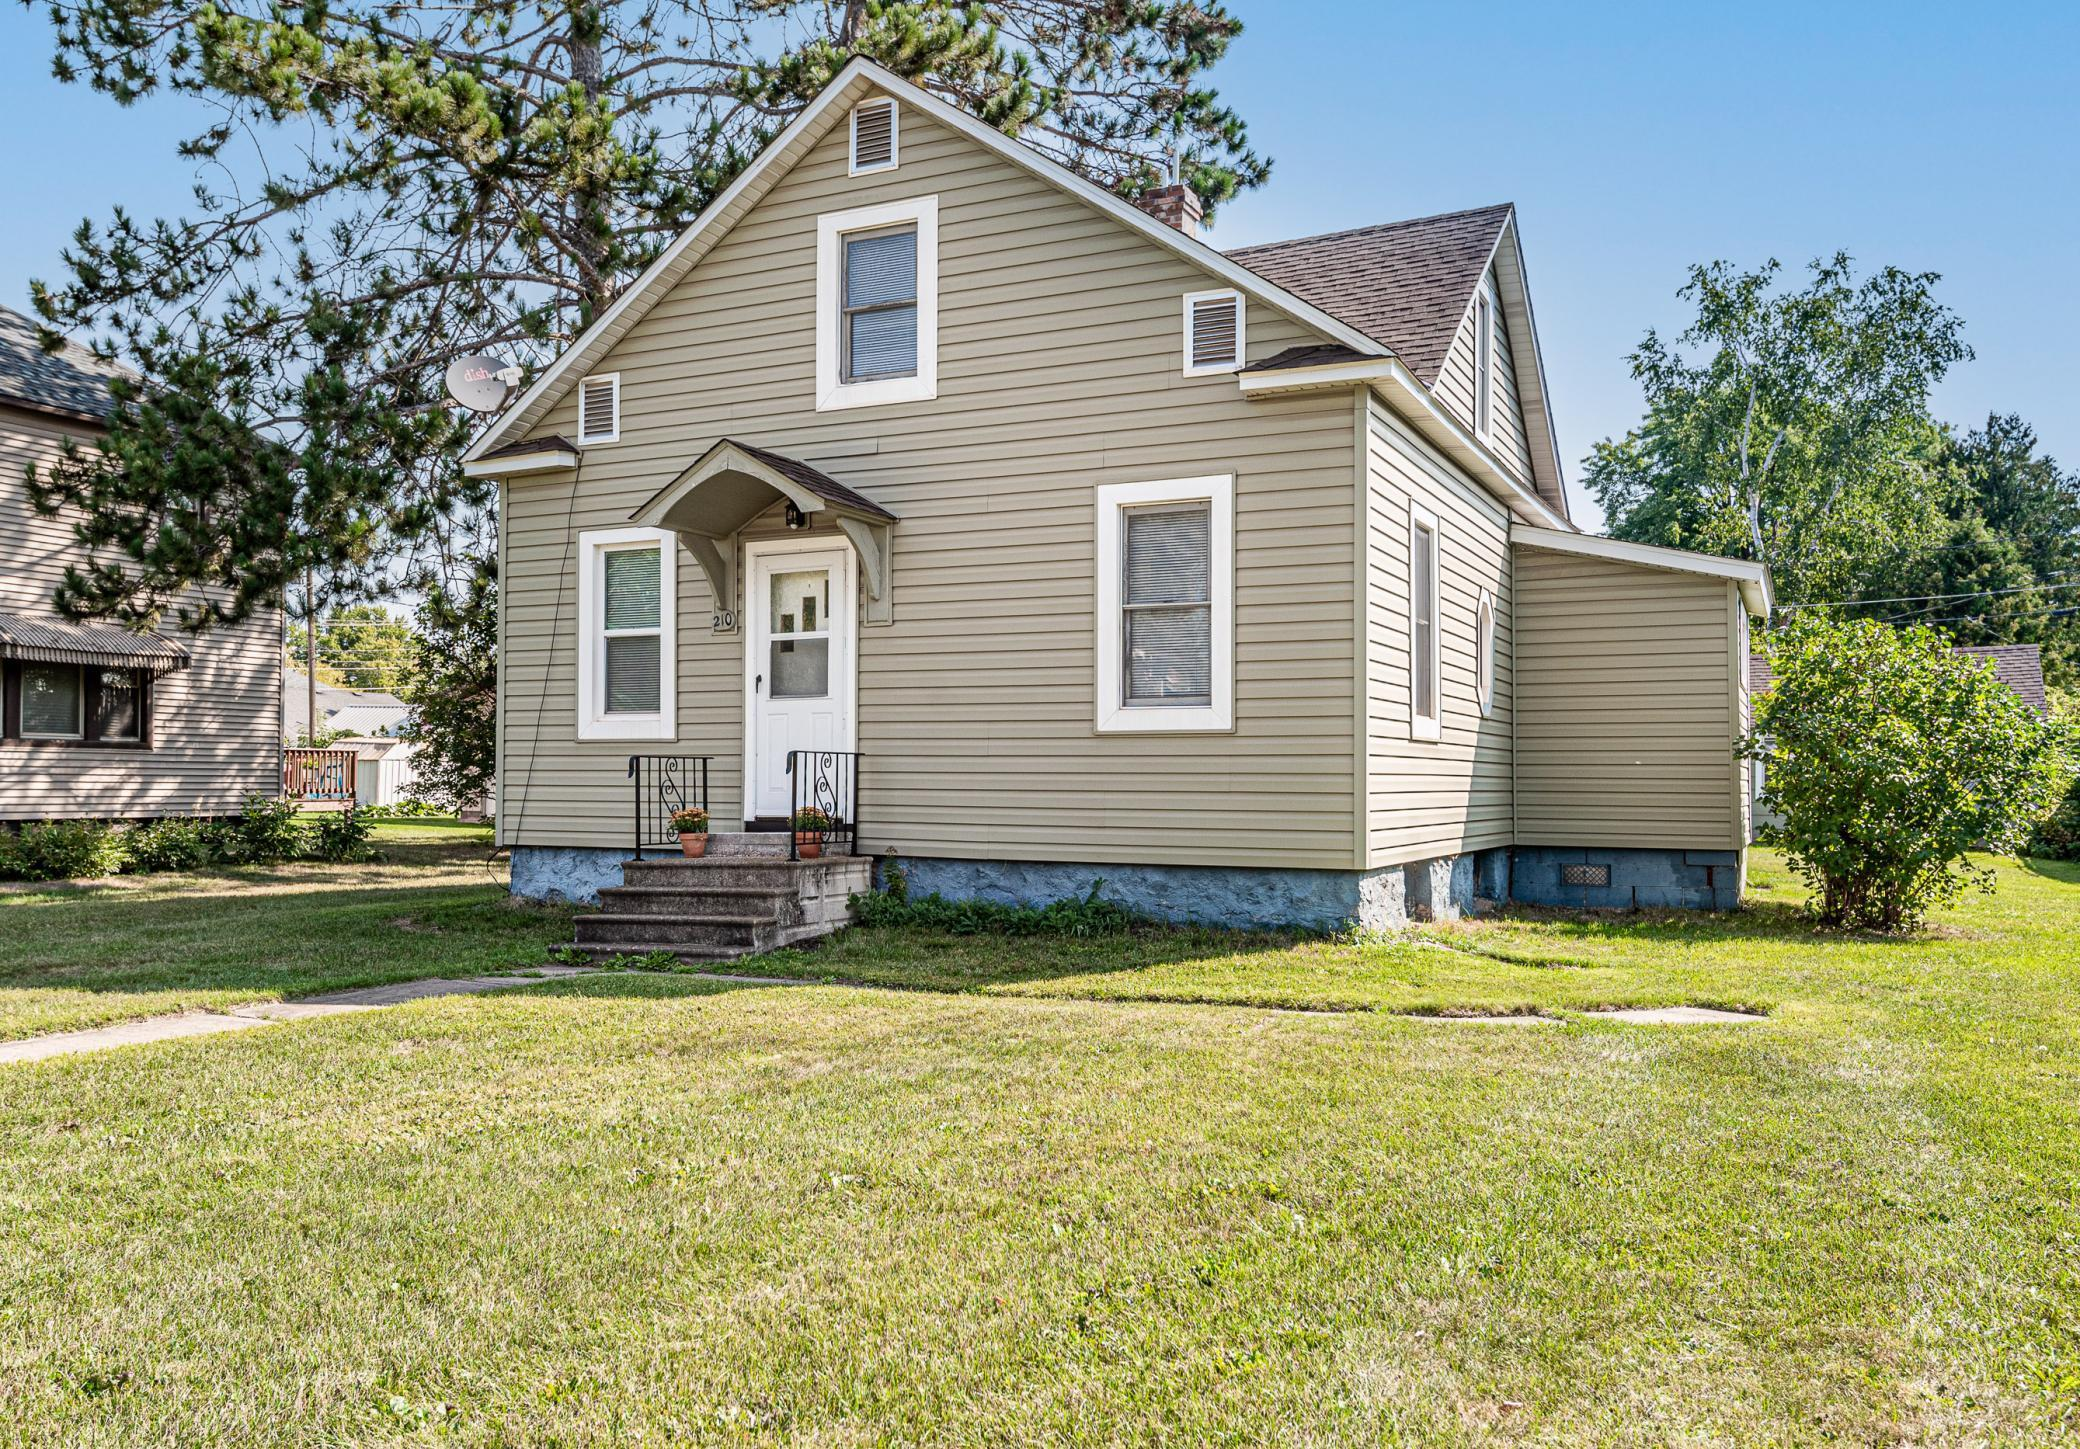 Recently refreshed 3 bedroom home near Longyear Park in Coleraine. Main floor bedroom, fresh paint and nice entry. Vinyl siding, walkout basement, rec room, extra shower and one stall garage. This affordable home is ready to go so take a look today,